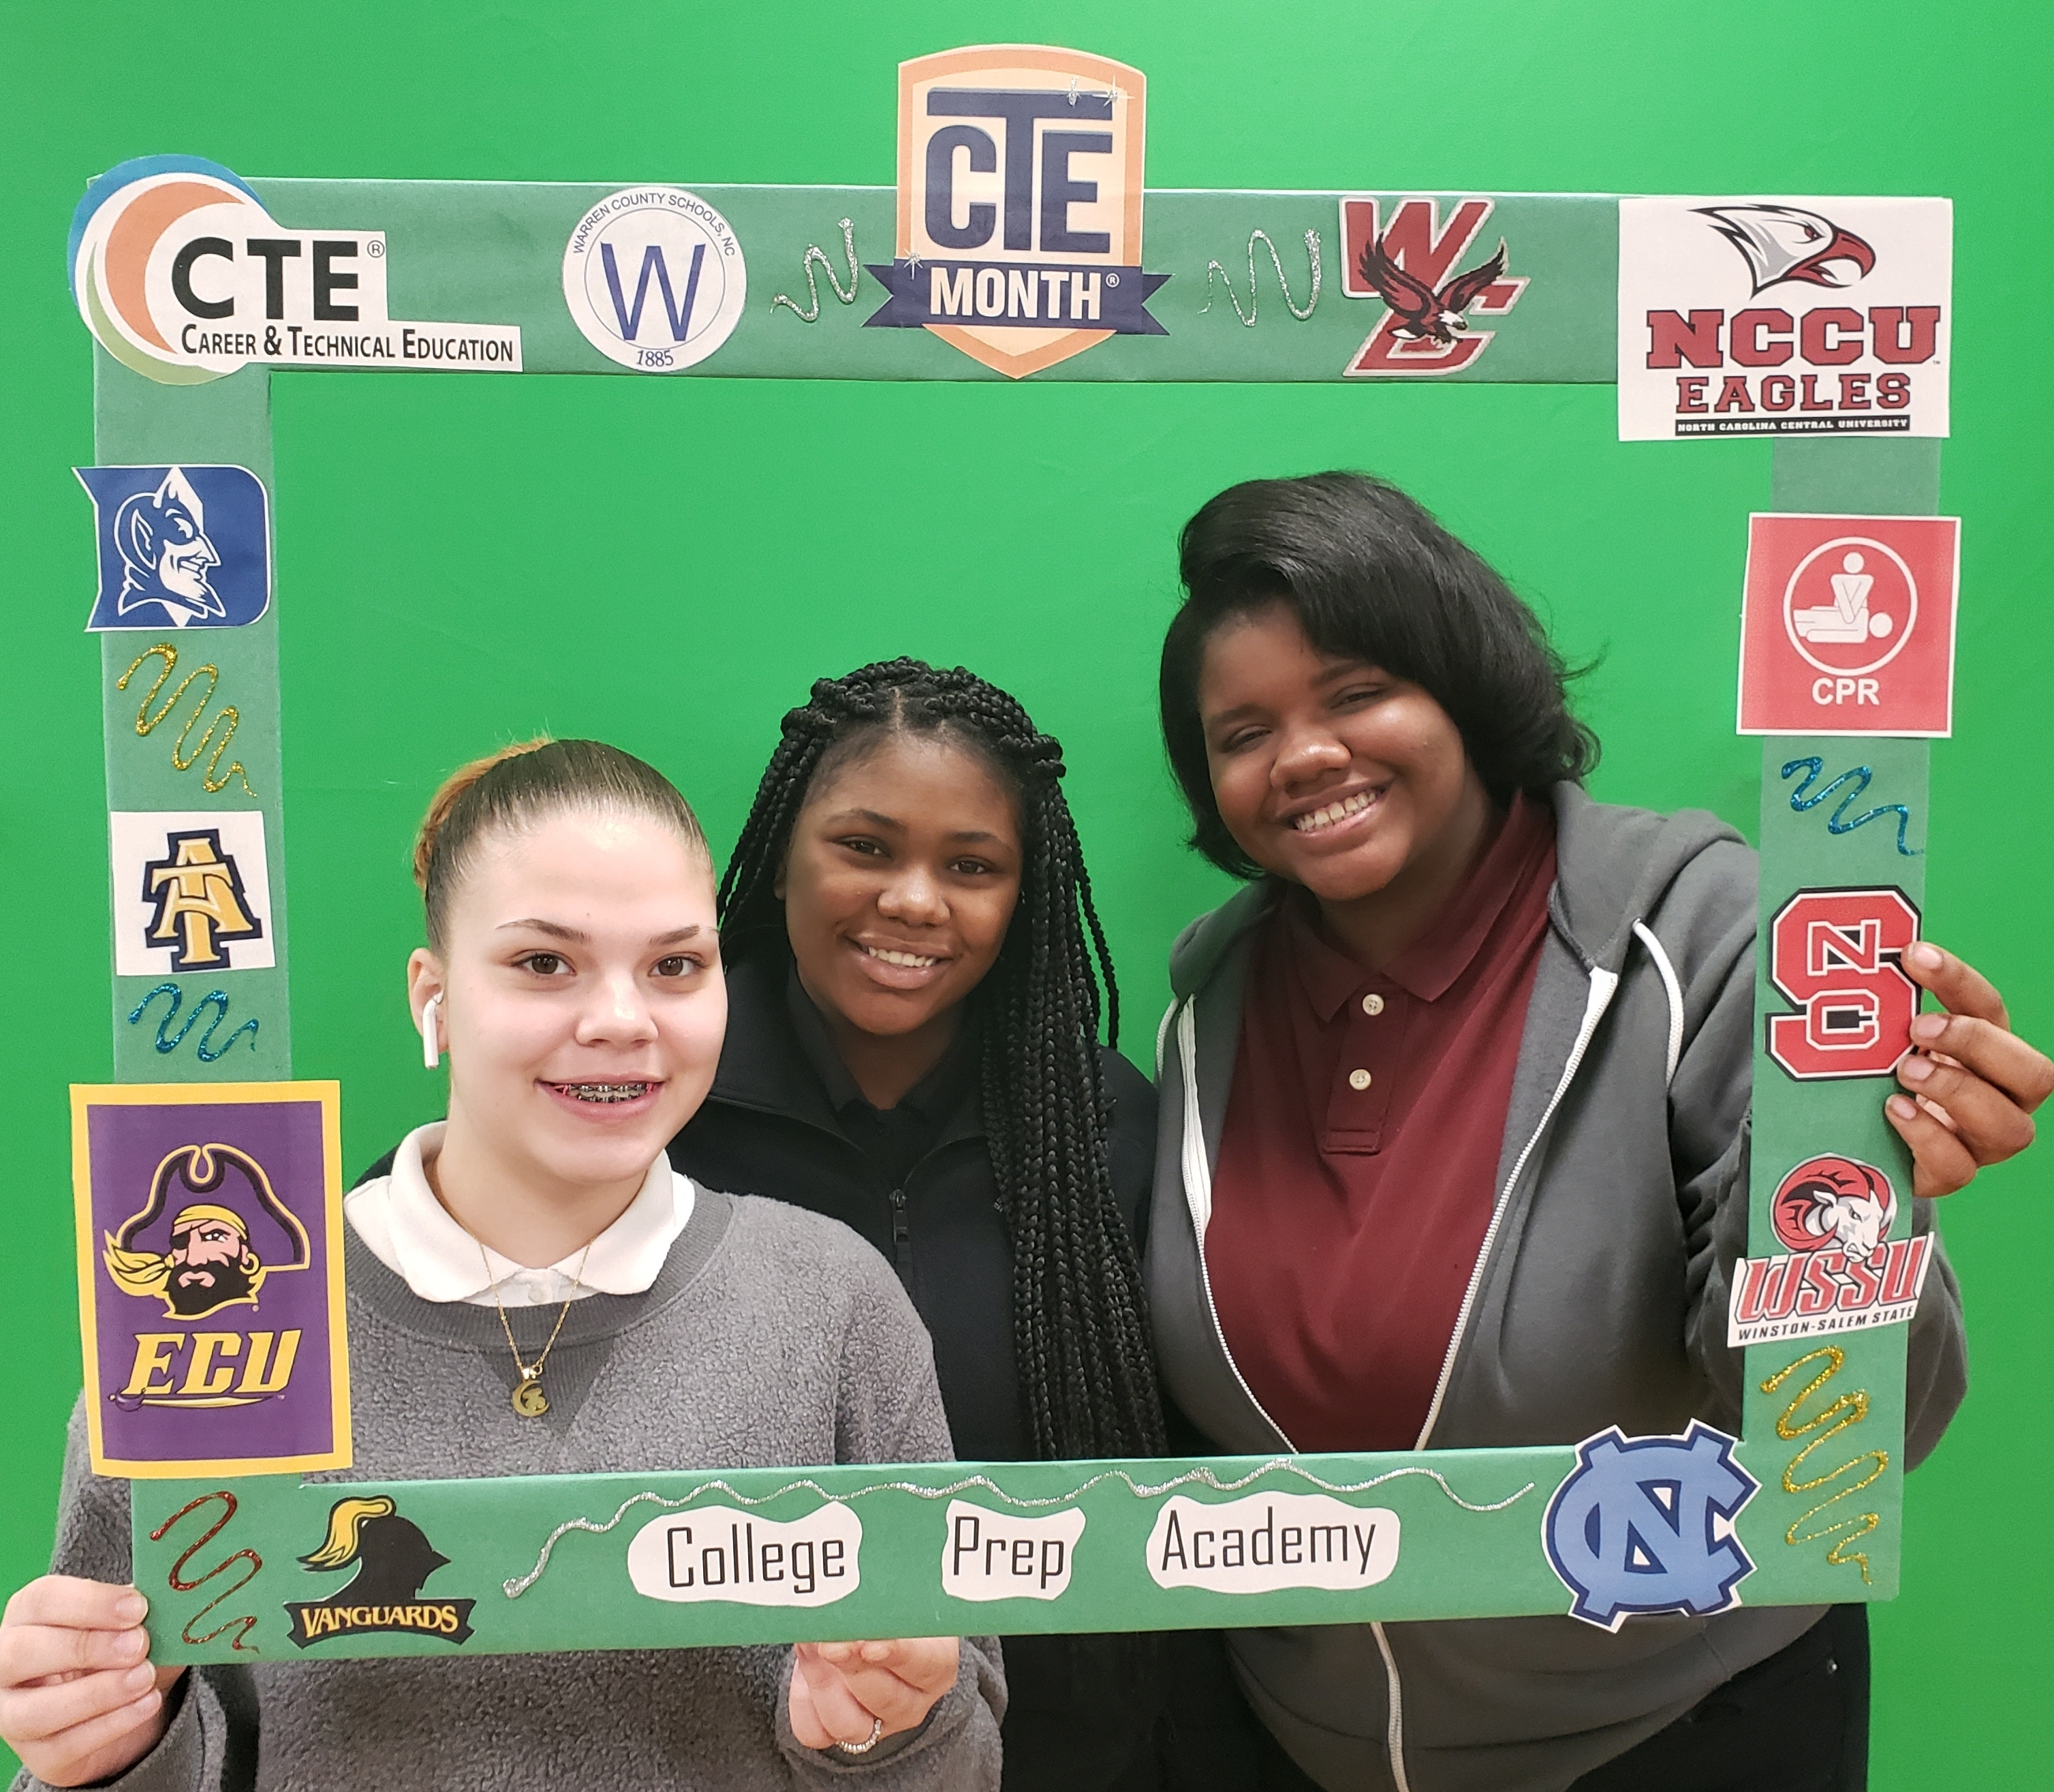 COLLEGE PREP STUDENTS CELEBRATE CTE MONTH